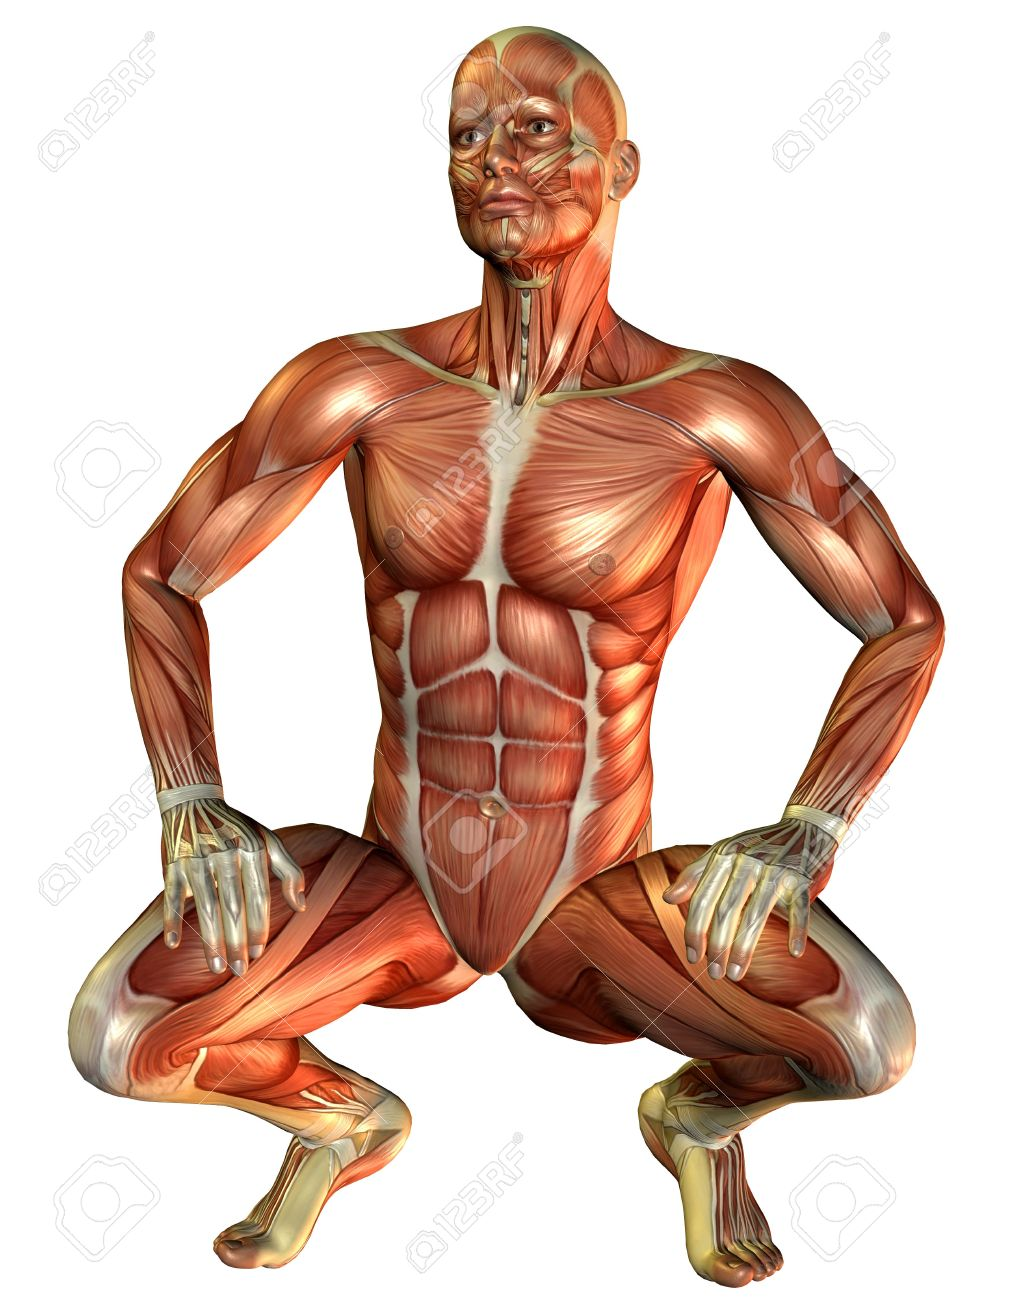 3d rendering study muscle man squatting stock photo, picture and, Muscles